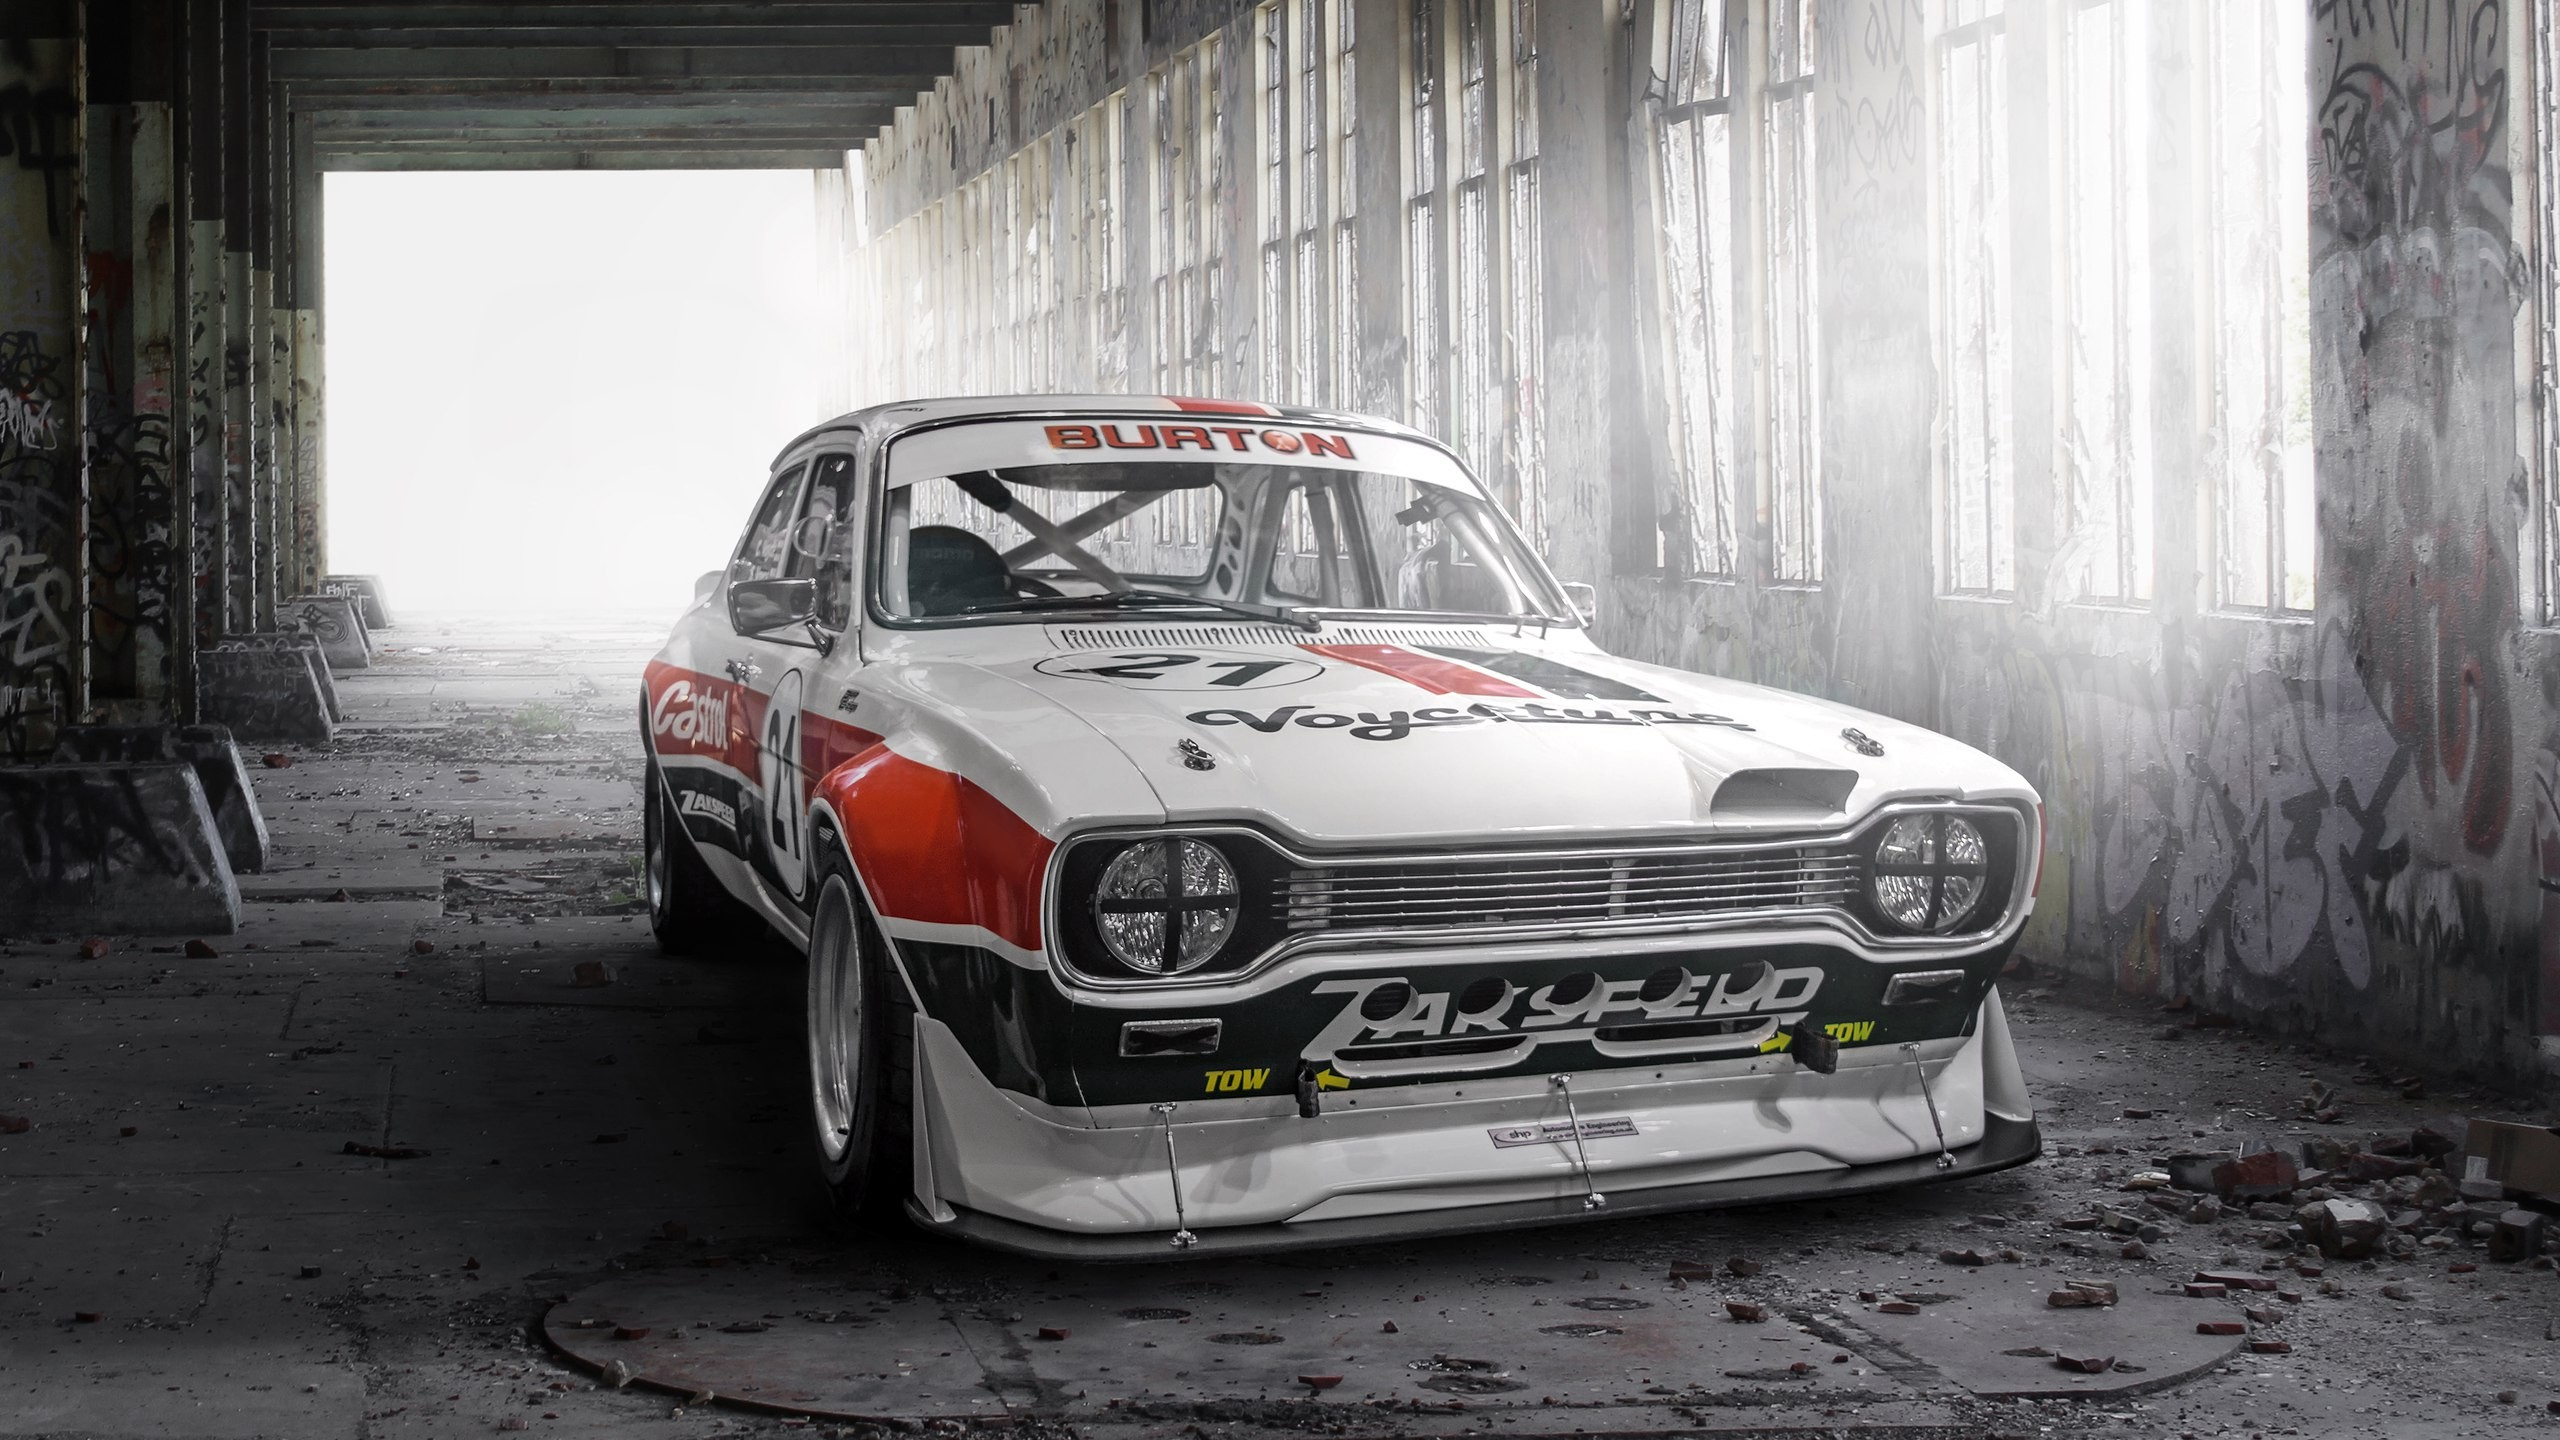 2560x1440 - Ford Escort Wallpapers 6